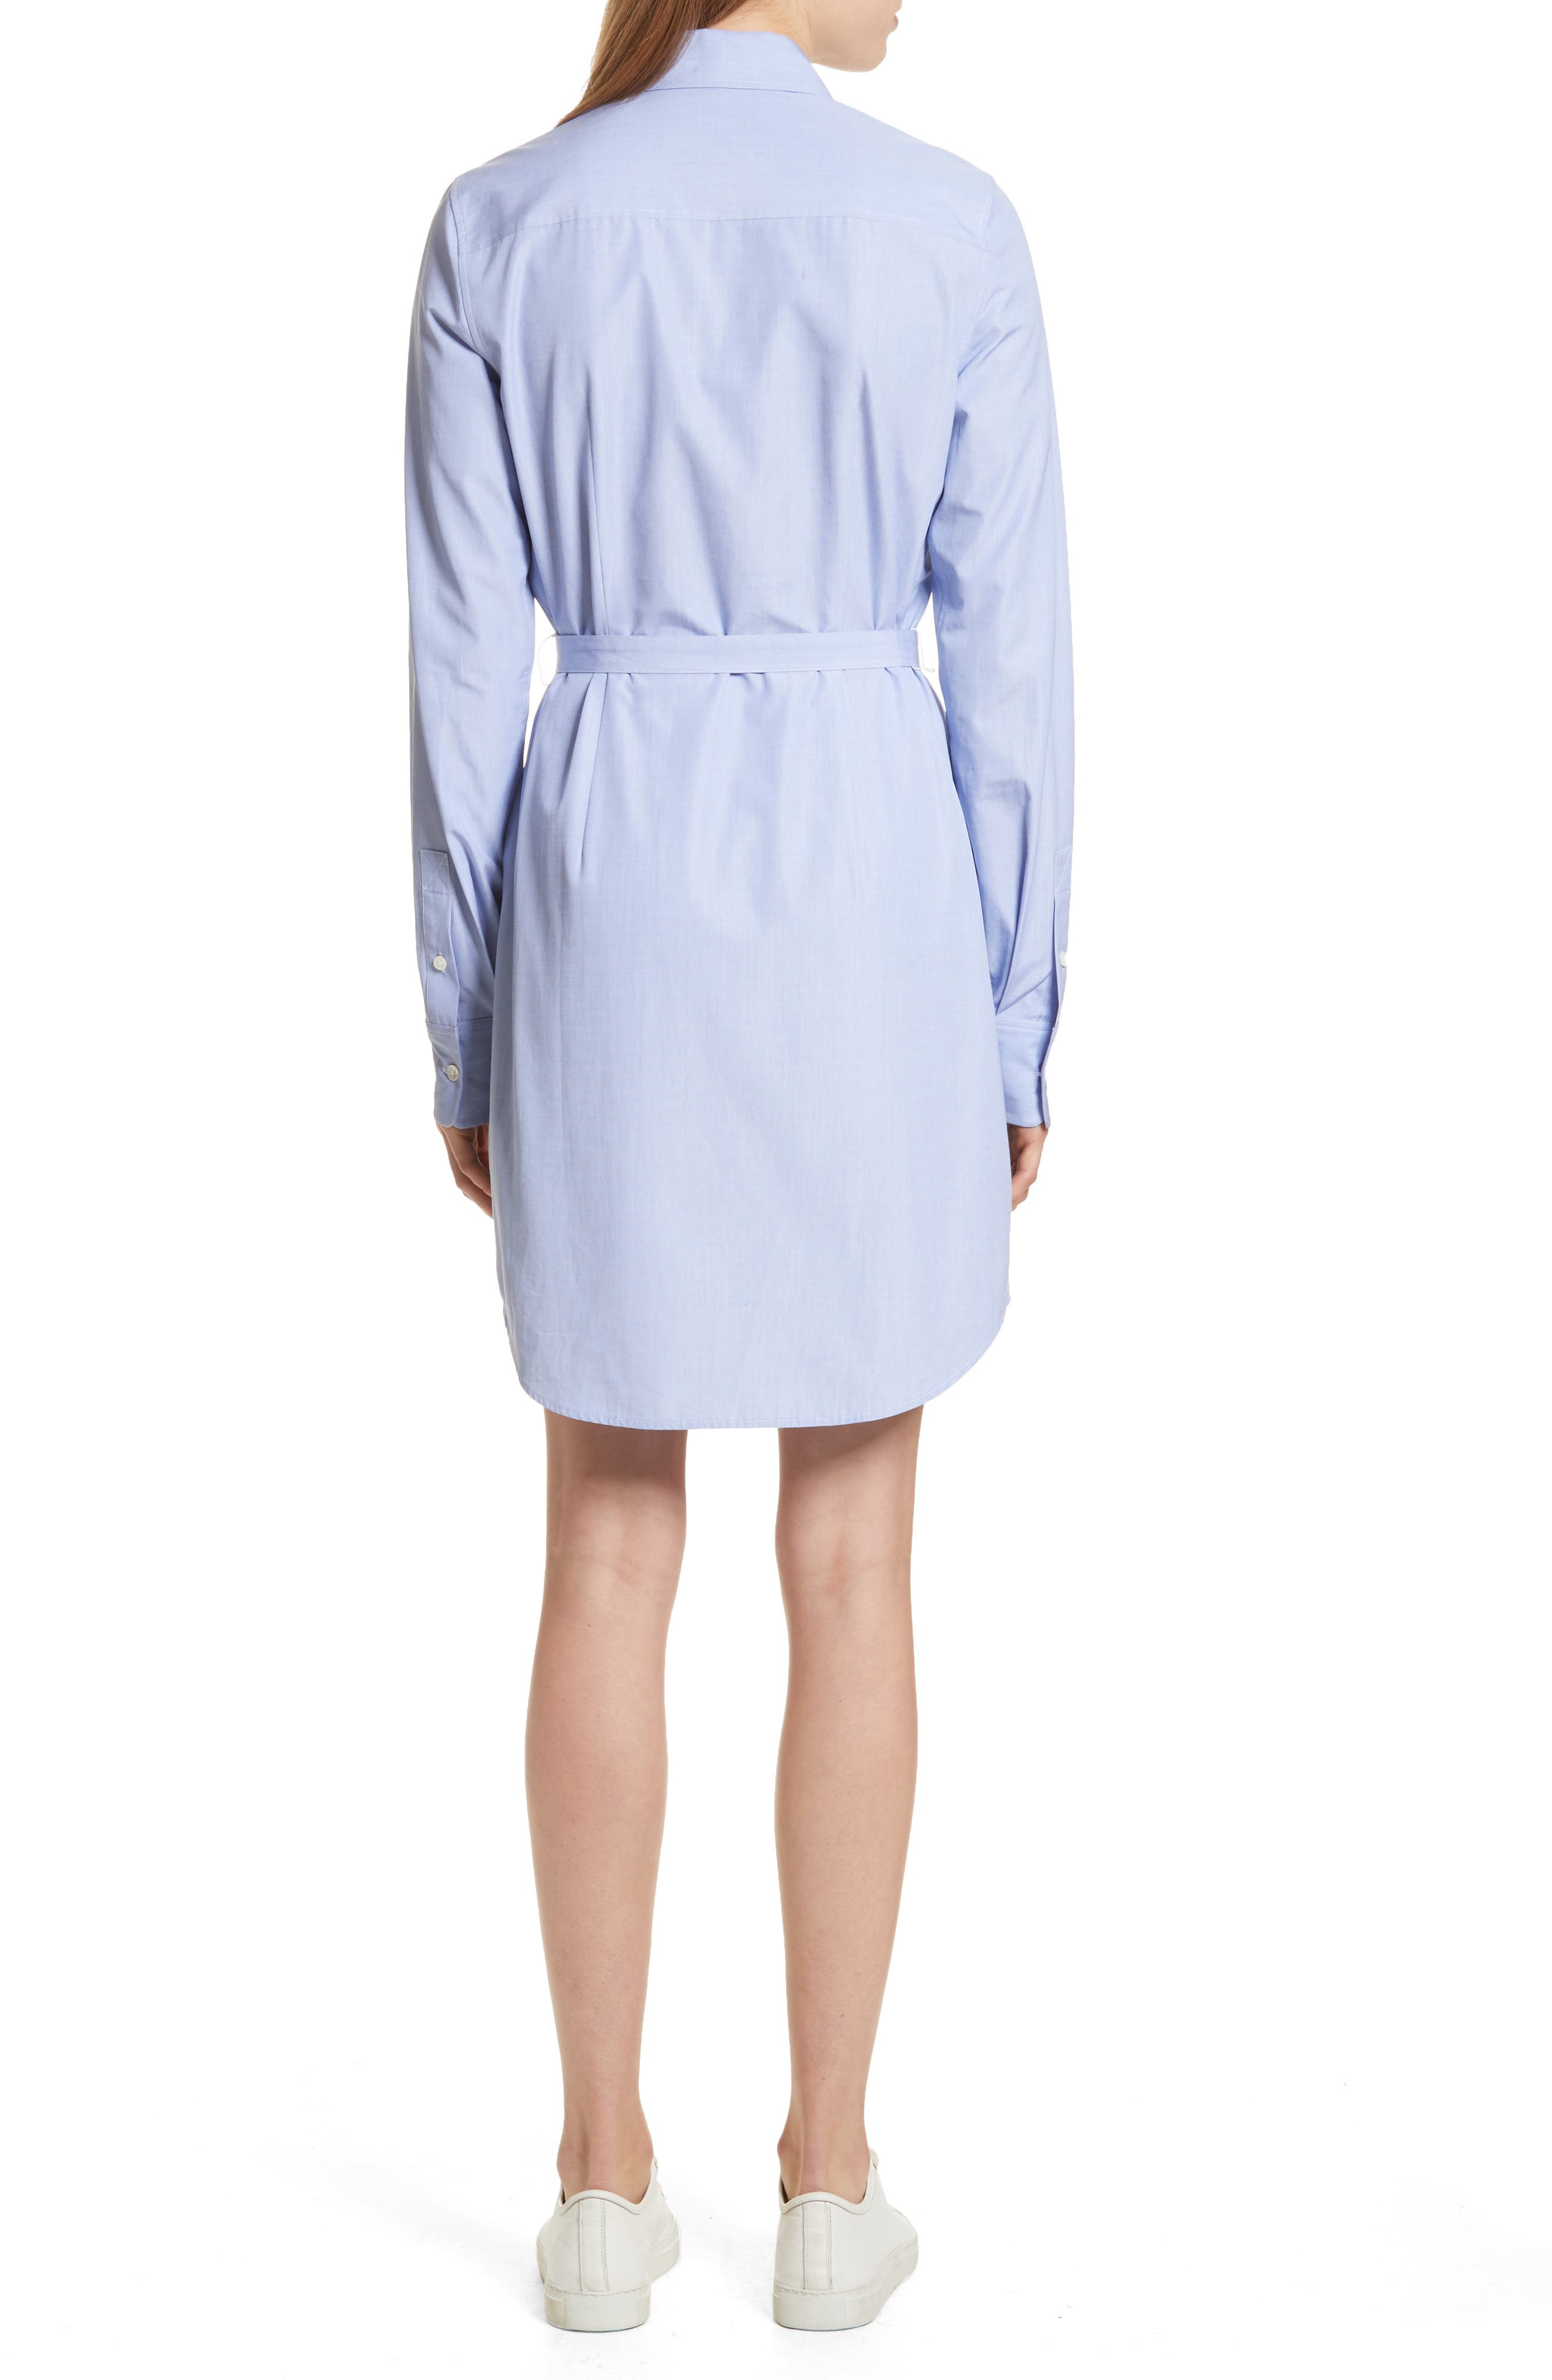 Crowley Cotton Shirtdress,                             Alternate thumbnail 2, color,                             473